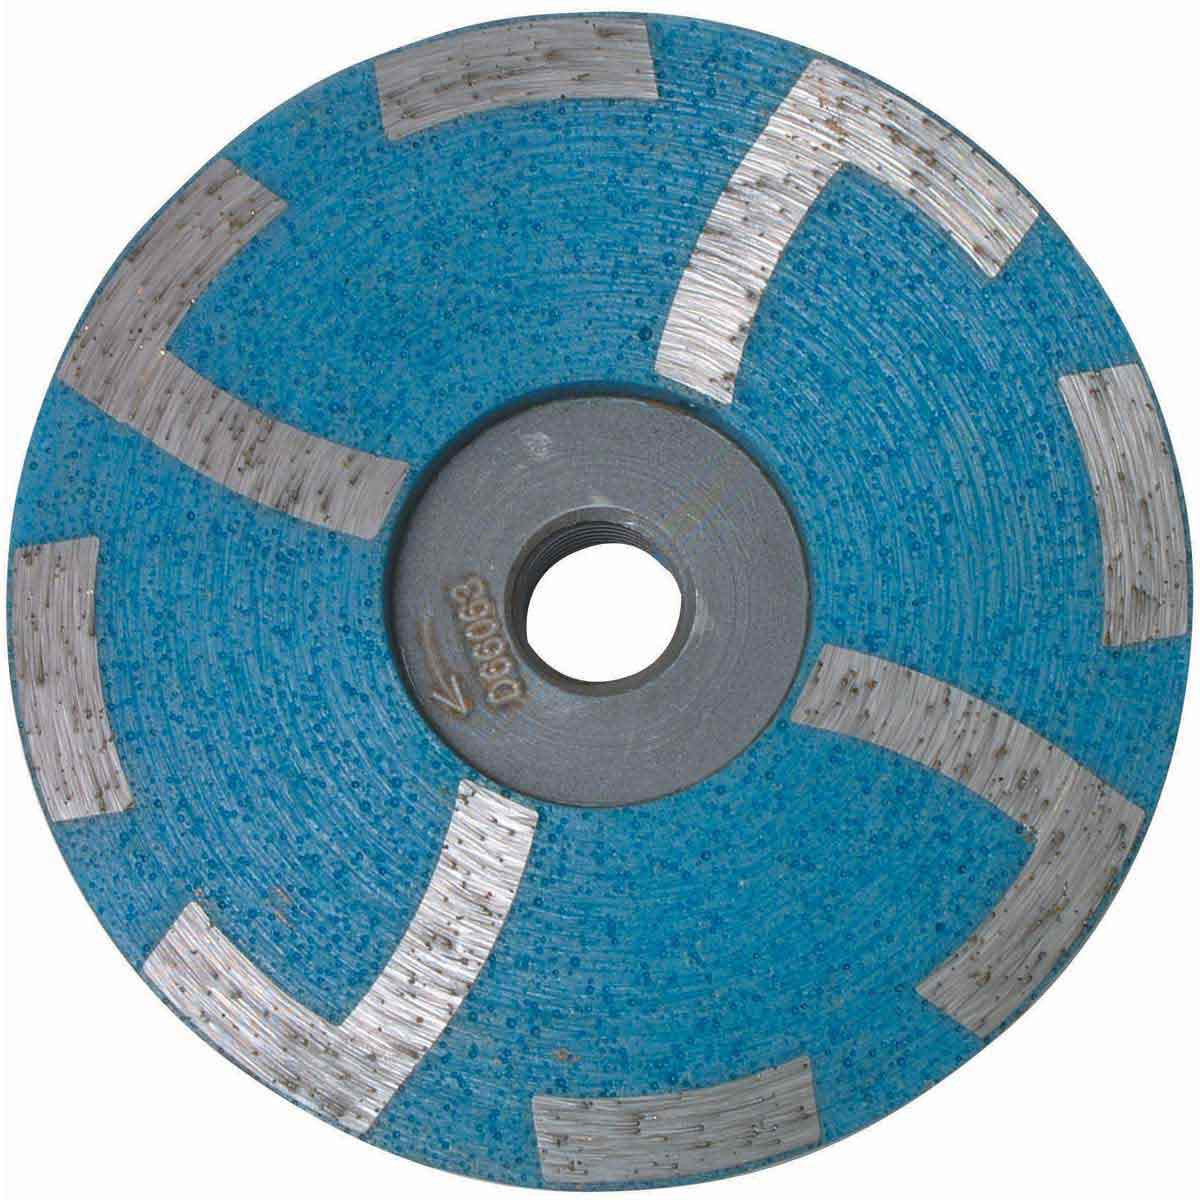 D66063 Coarse Blue Diteq 4 inch Resin Filled Cup Wheels